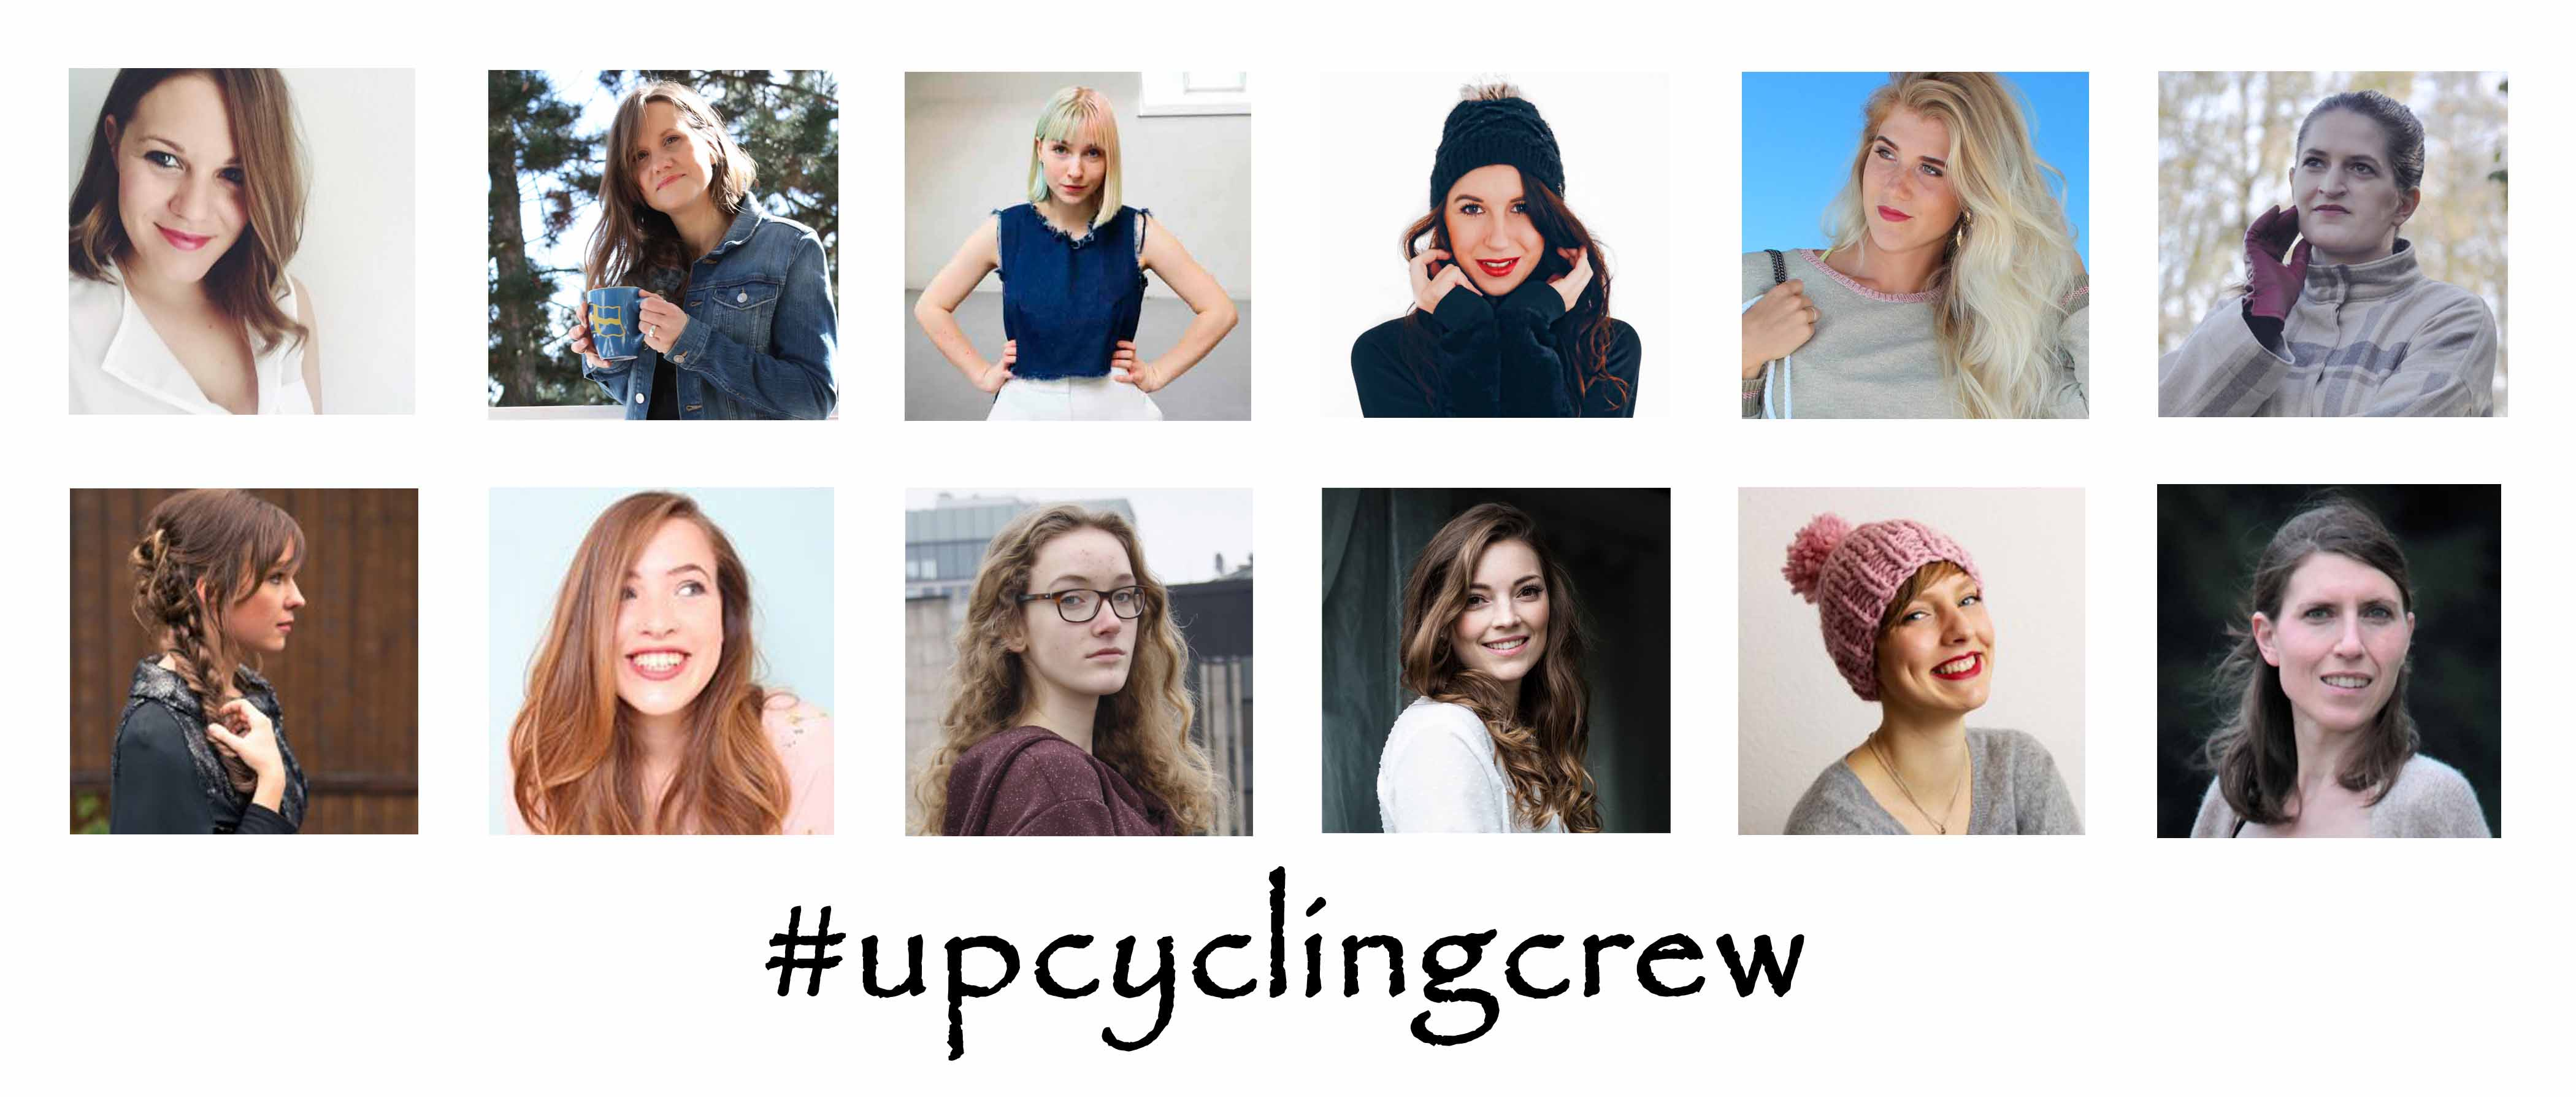 Blogparade Upcycling - upcyclingcrew. Beitrag zum Thema Upcycling von JanaKnoepfchen - Naehen fuer Jungs.